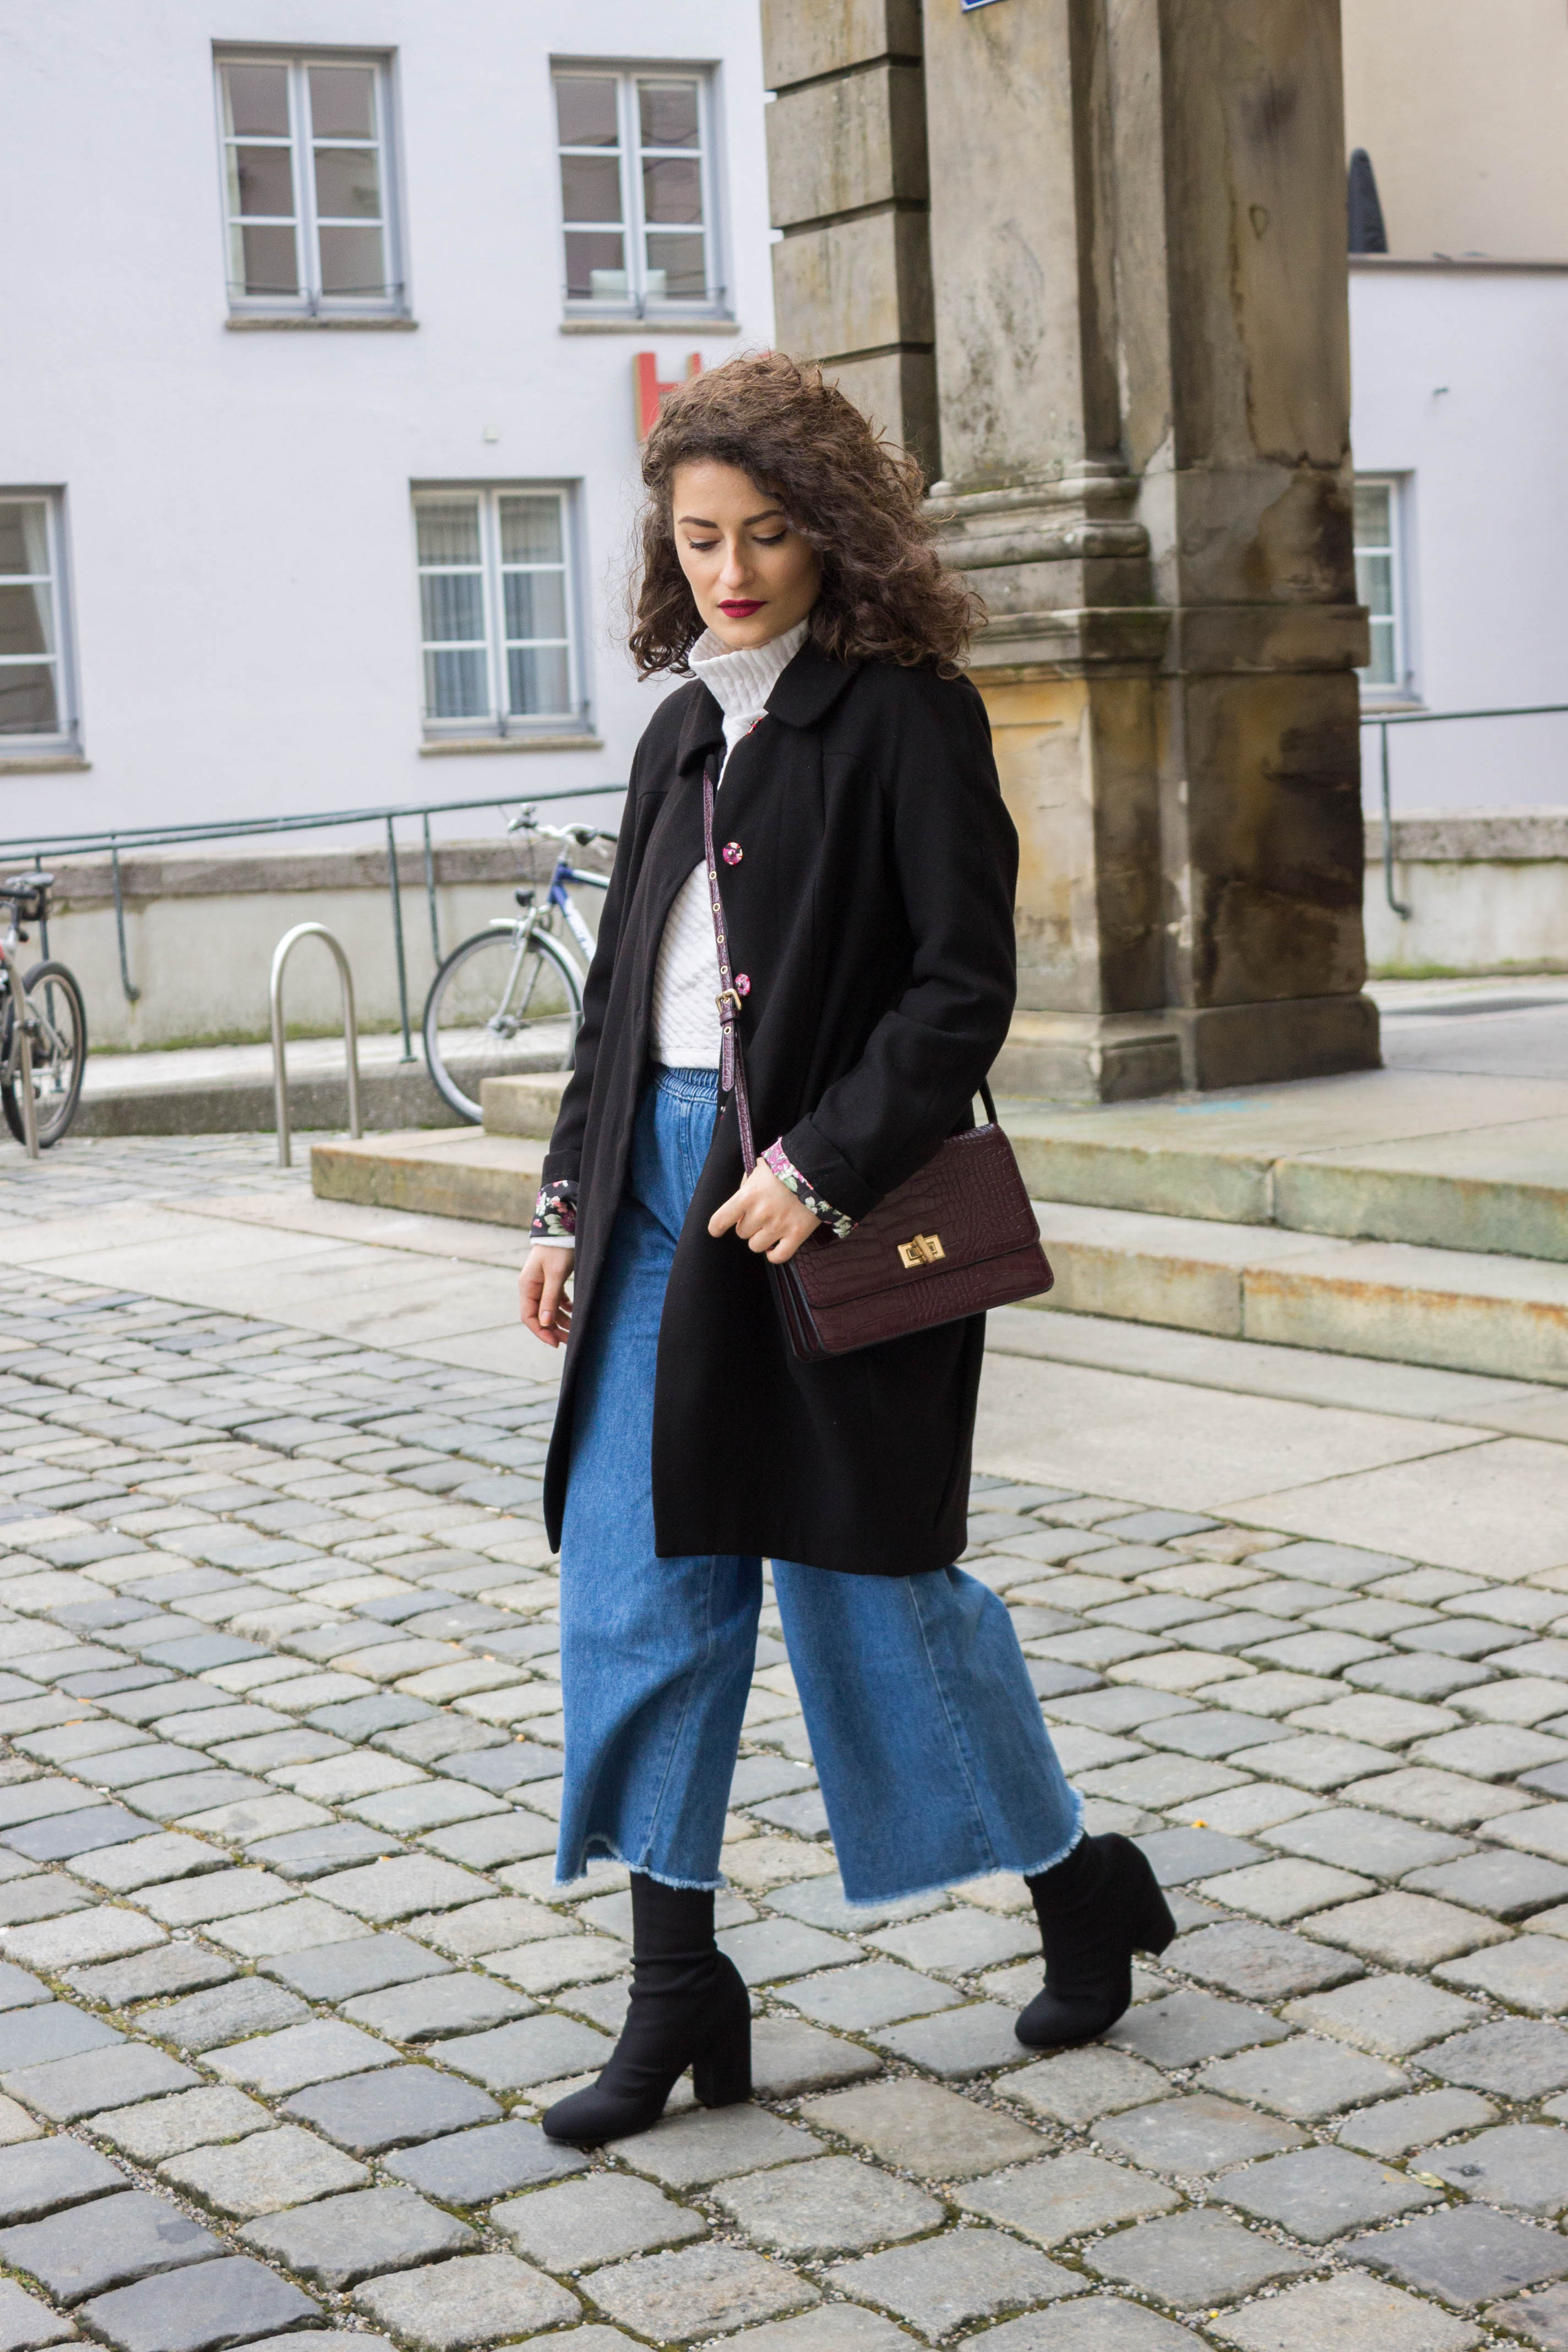 How to wide wear leg denim trousers recommendations to wear for winter in 2019